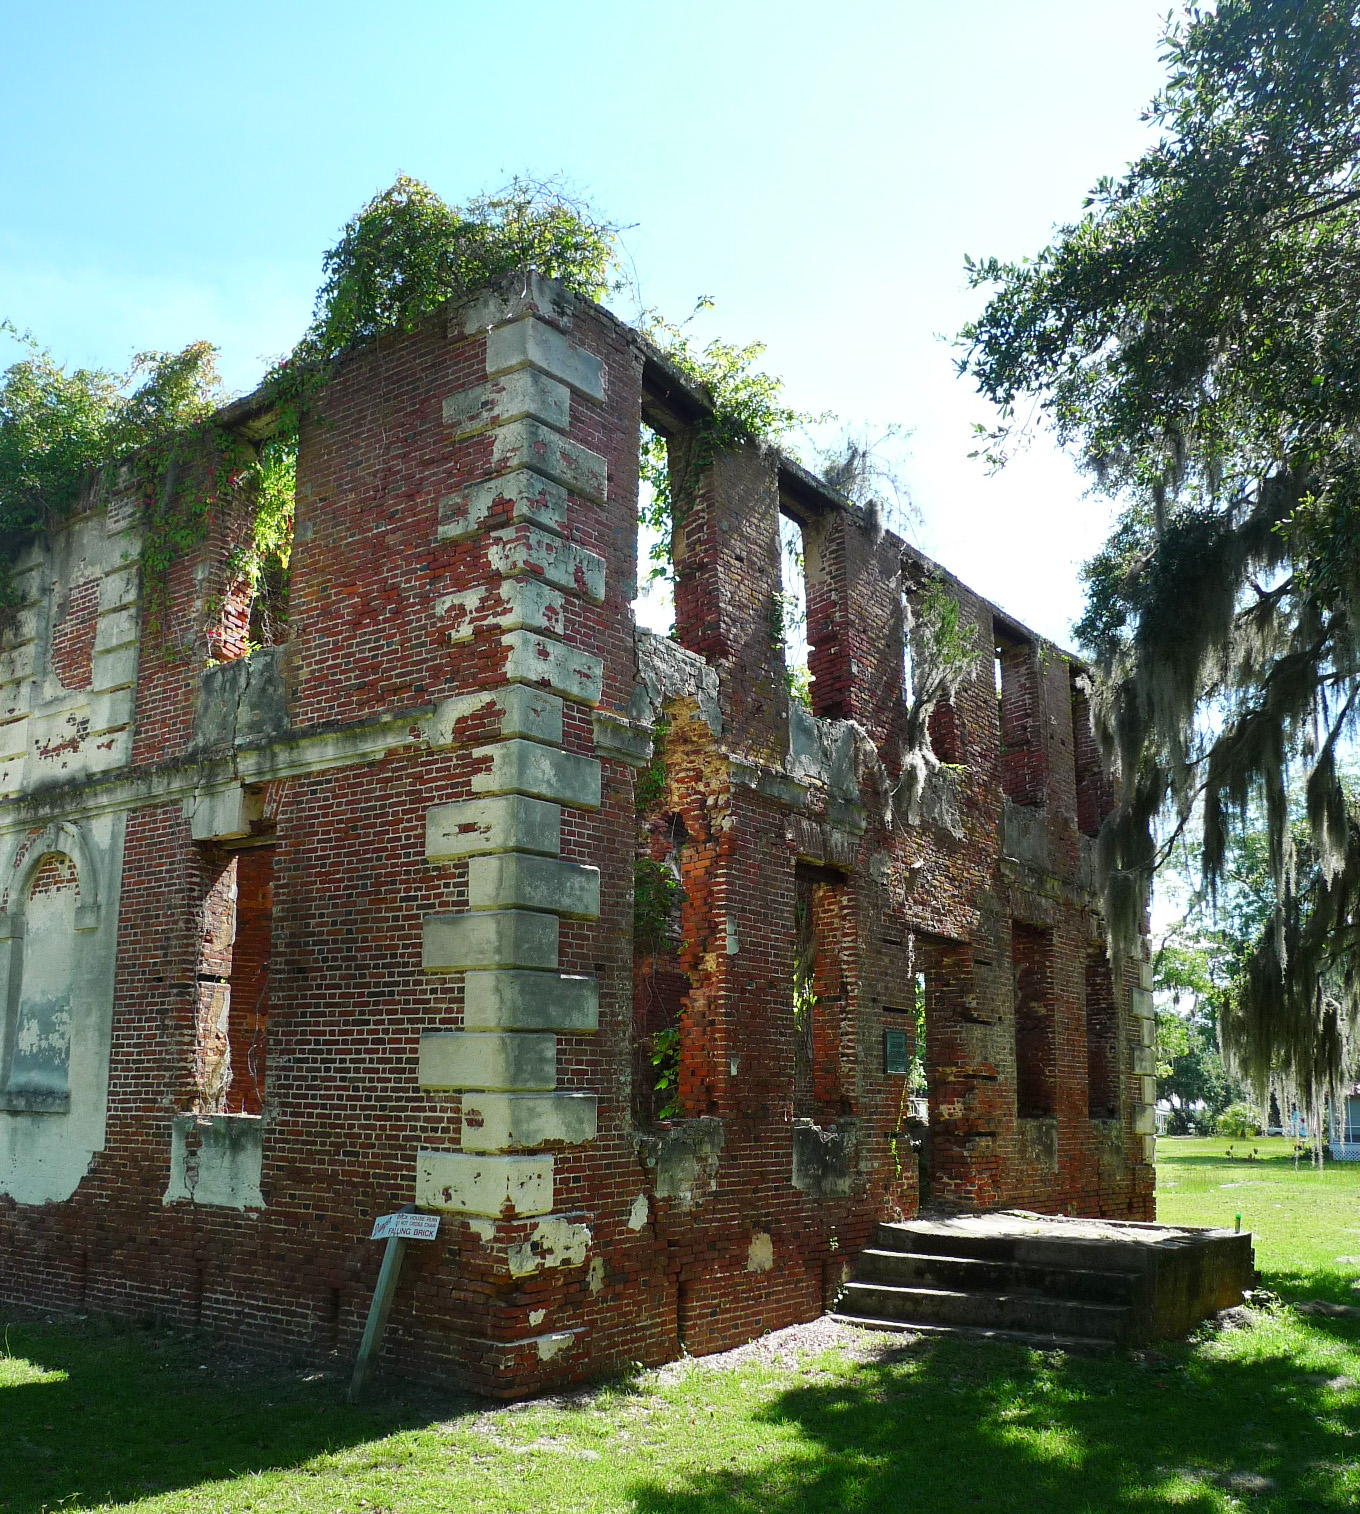 - May 22, 2017Brick House was built in approximately 1725. The ruin is a great example of early colonial architecture, and is listed as a national historic landmark. The building burned in 1929. Simons Young + associates is working with the Preservation Society of Charleston, 4SE engineers, and preservation consultant Hillary King to stabilize the structure. More information at brickhouseruins.org